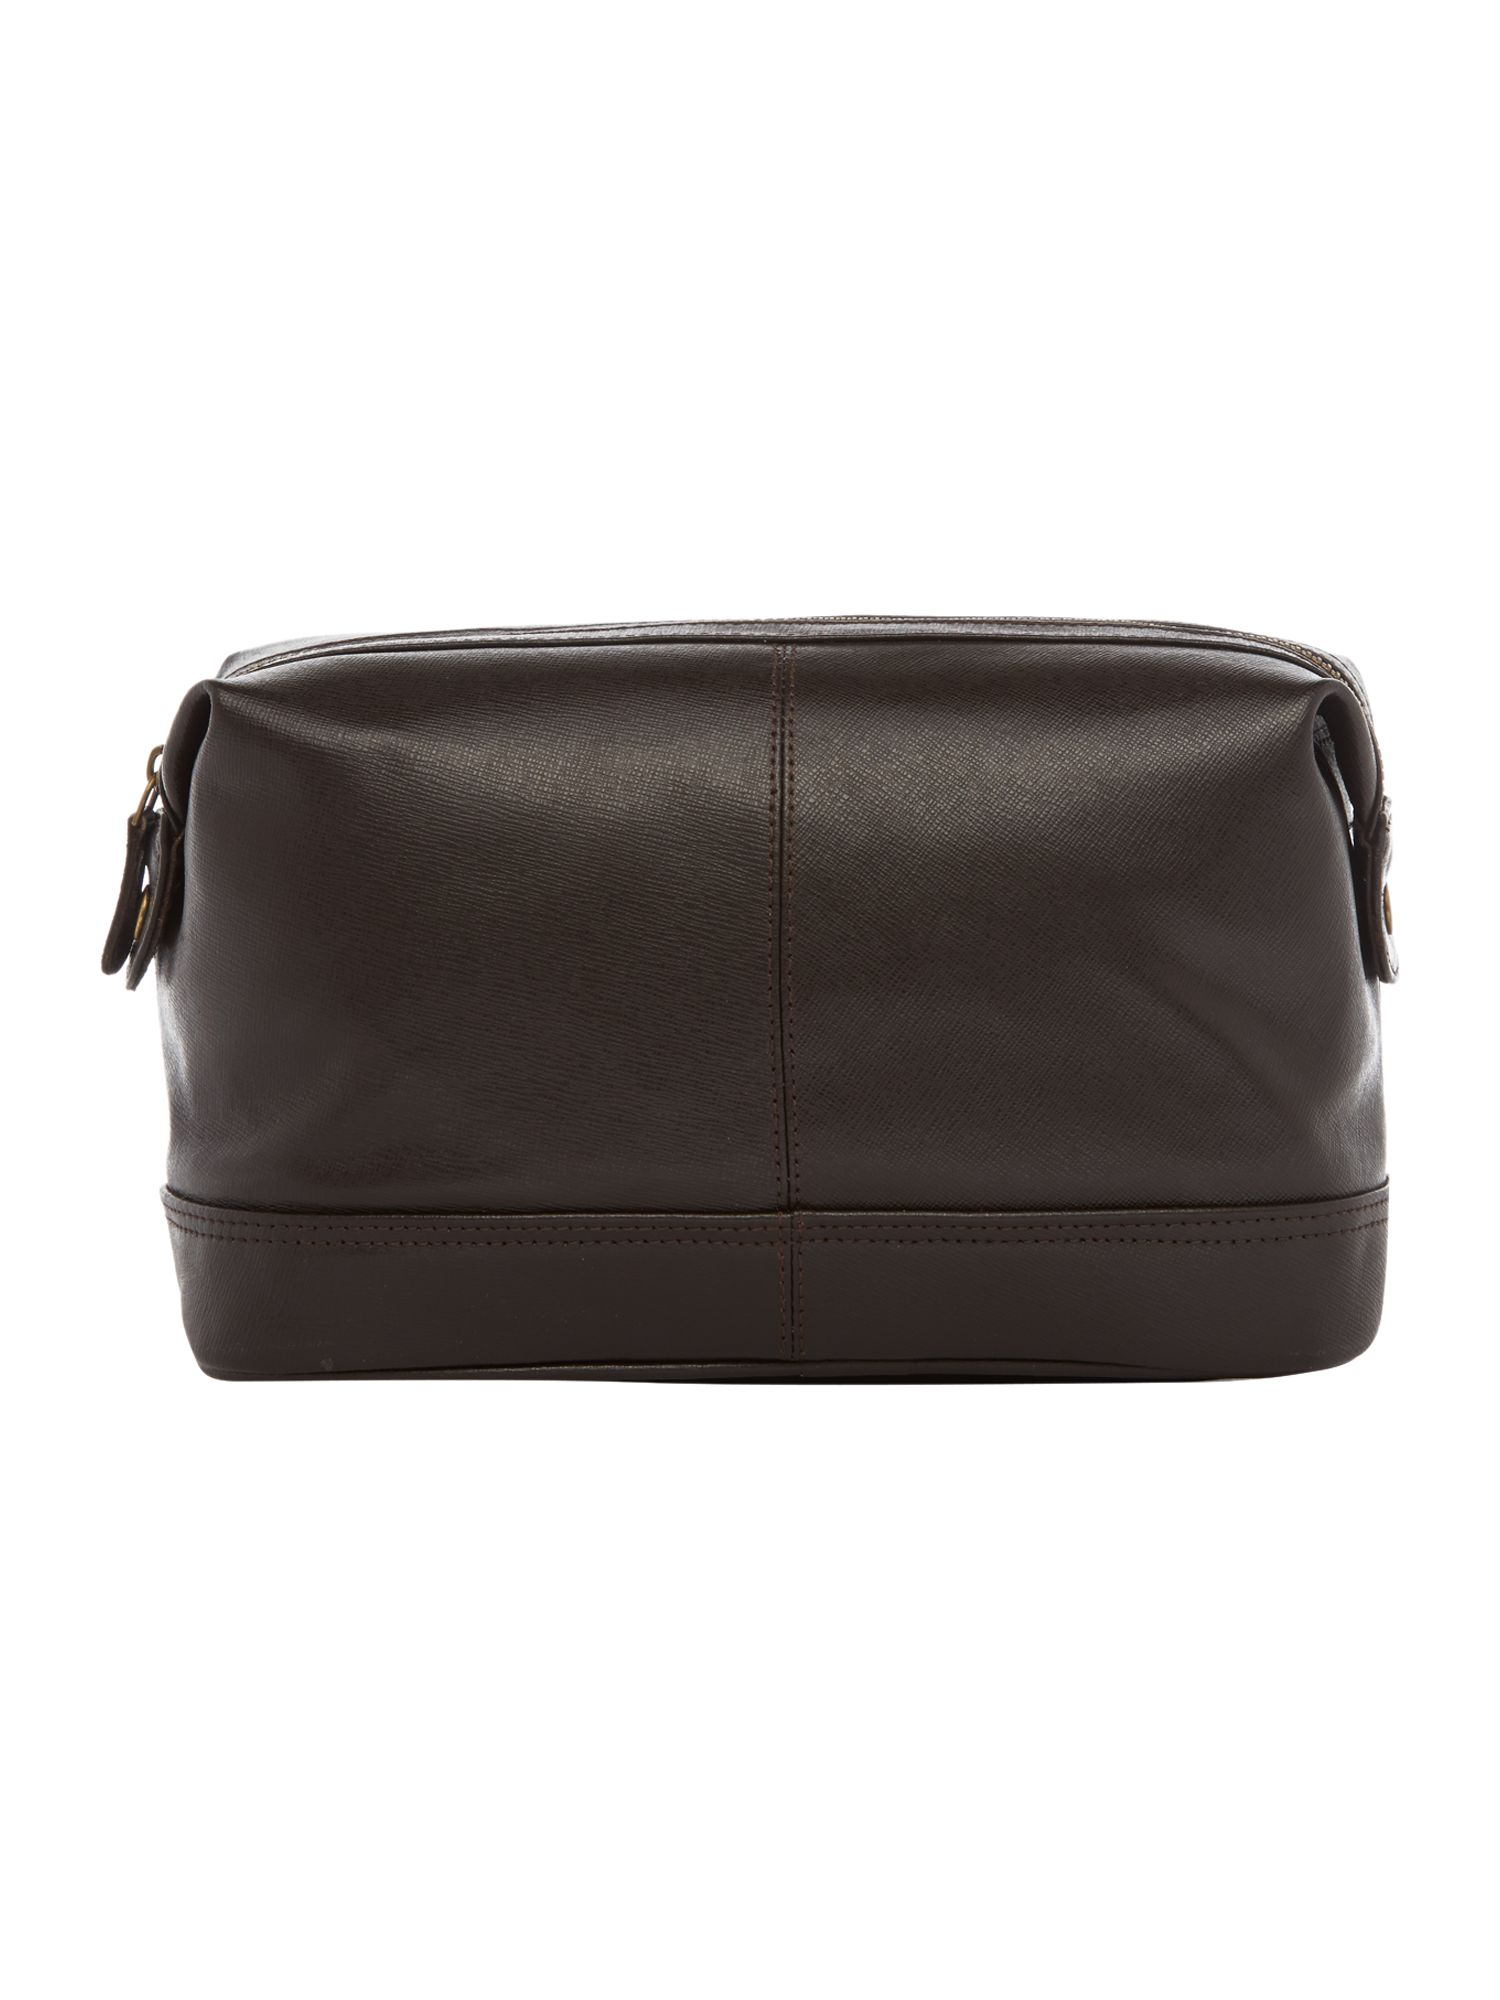 Saffiano leather wash bag